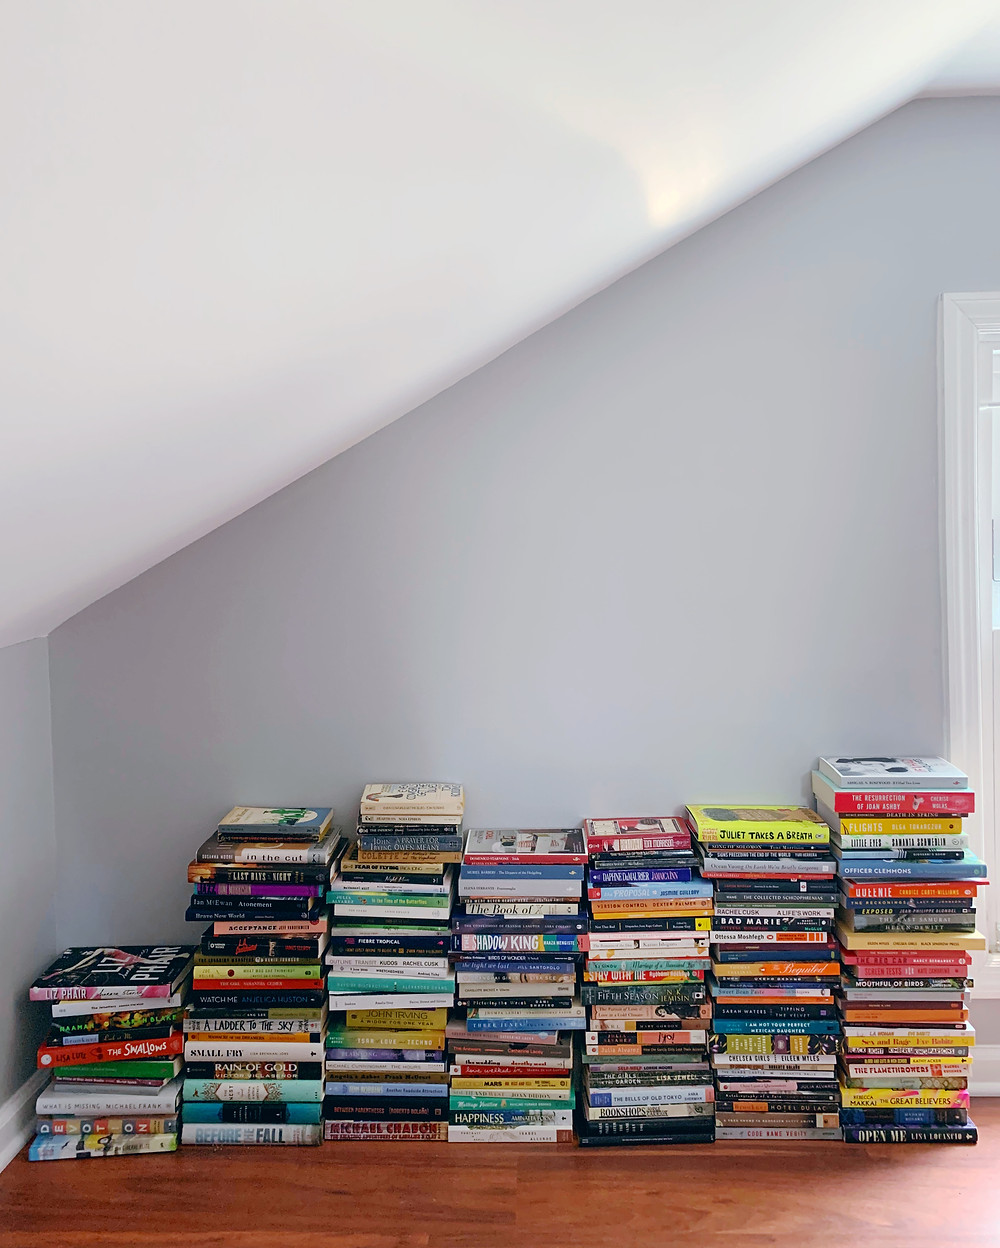 Several piles of books against a wall in an attic